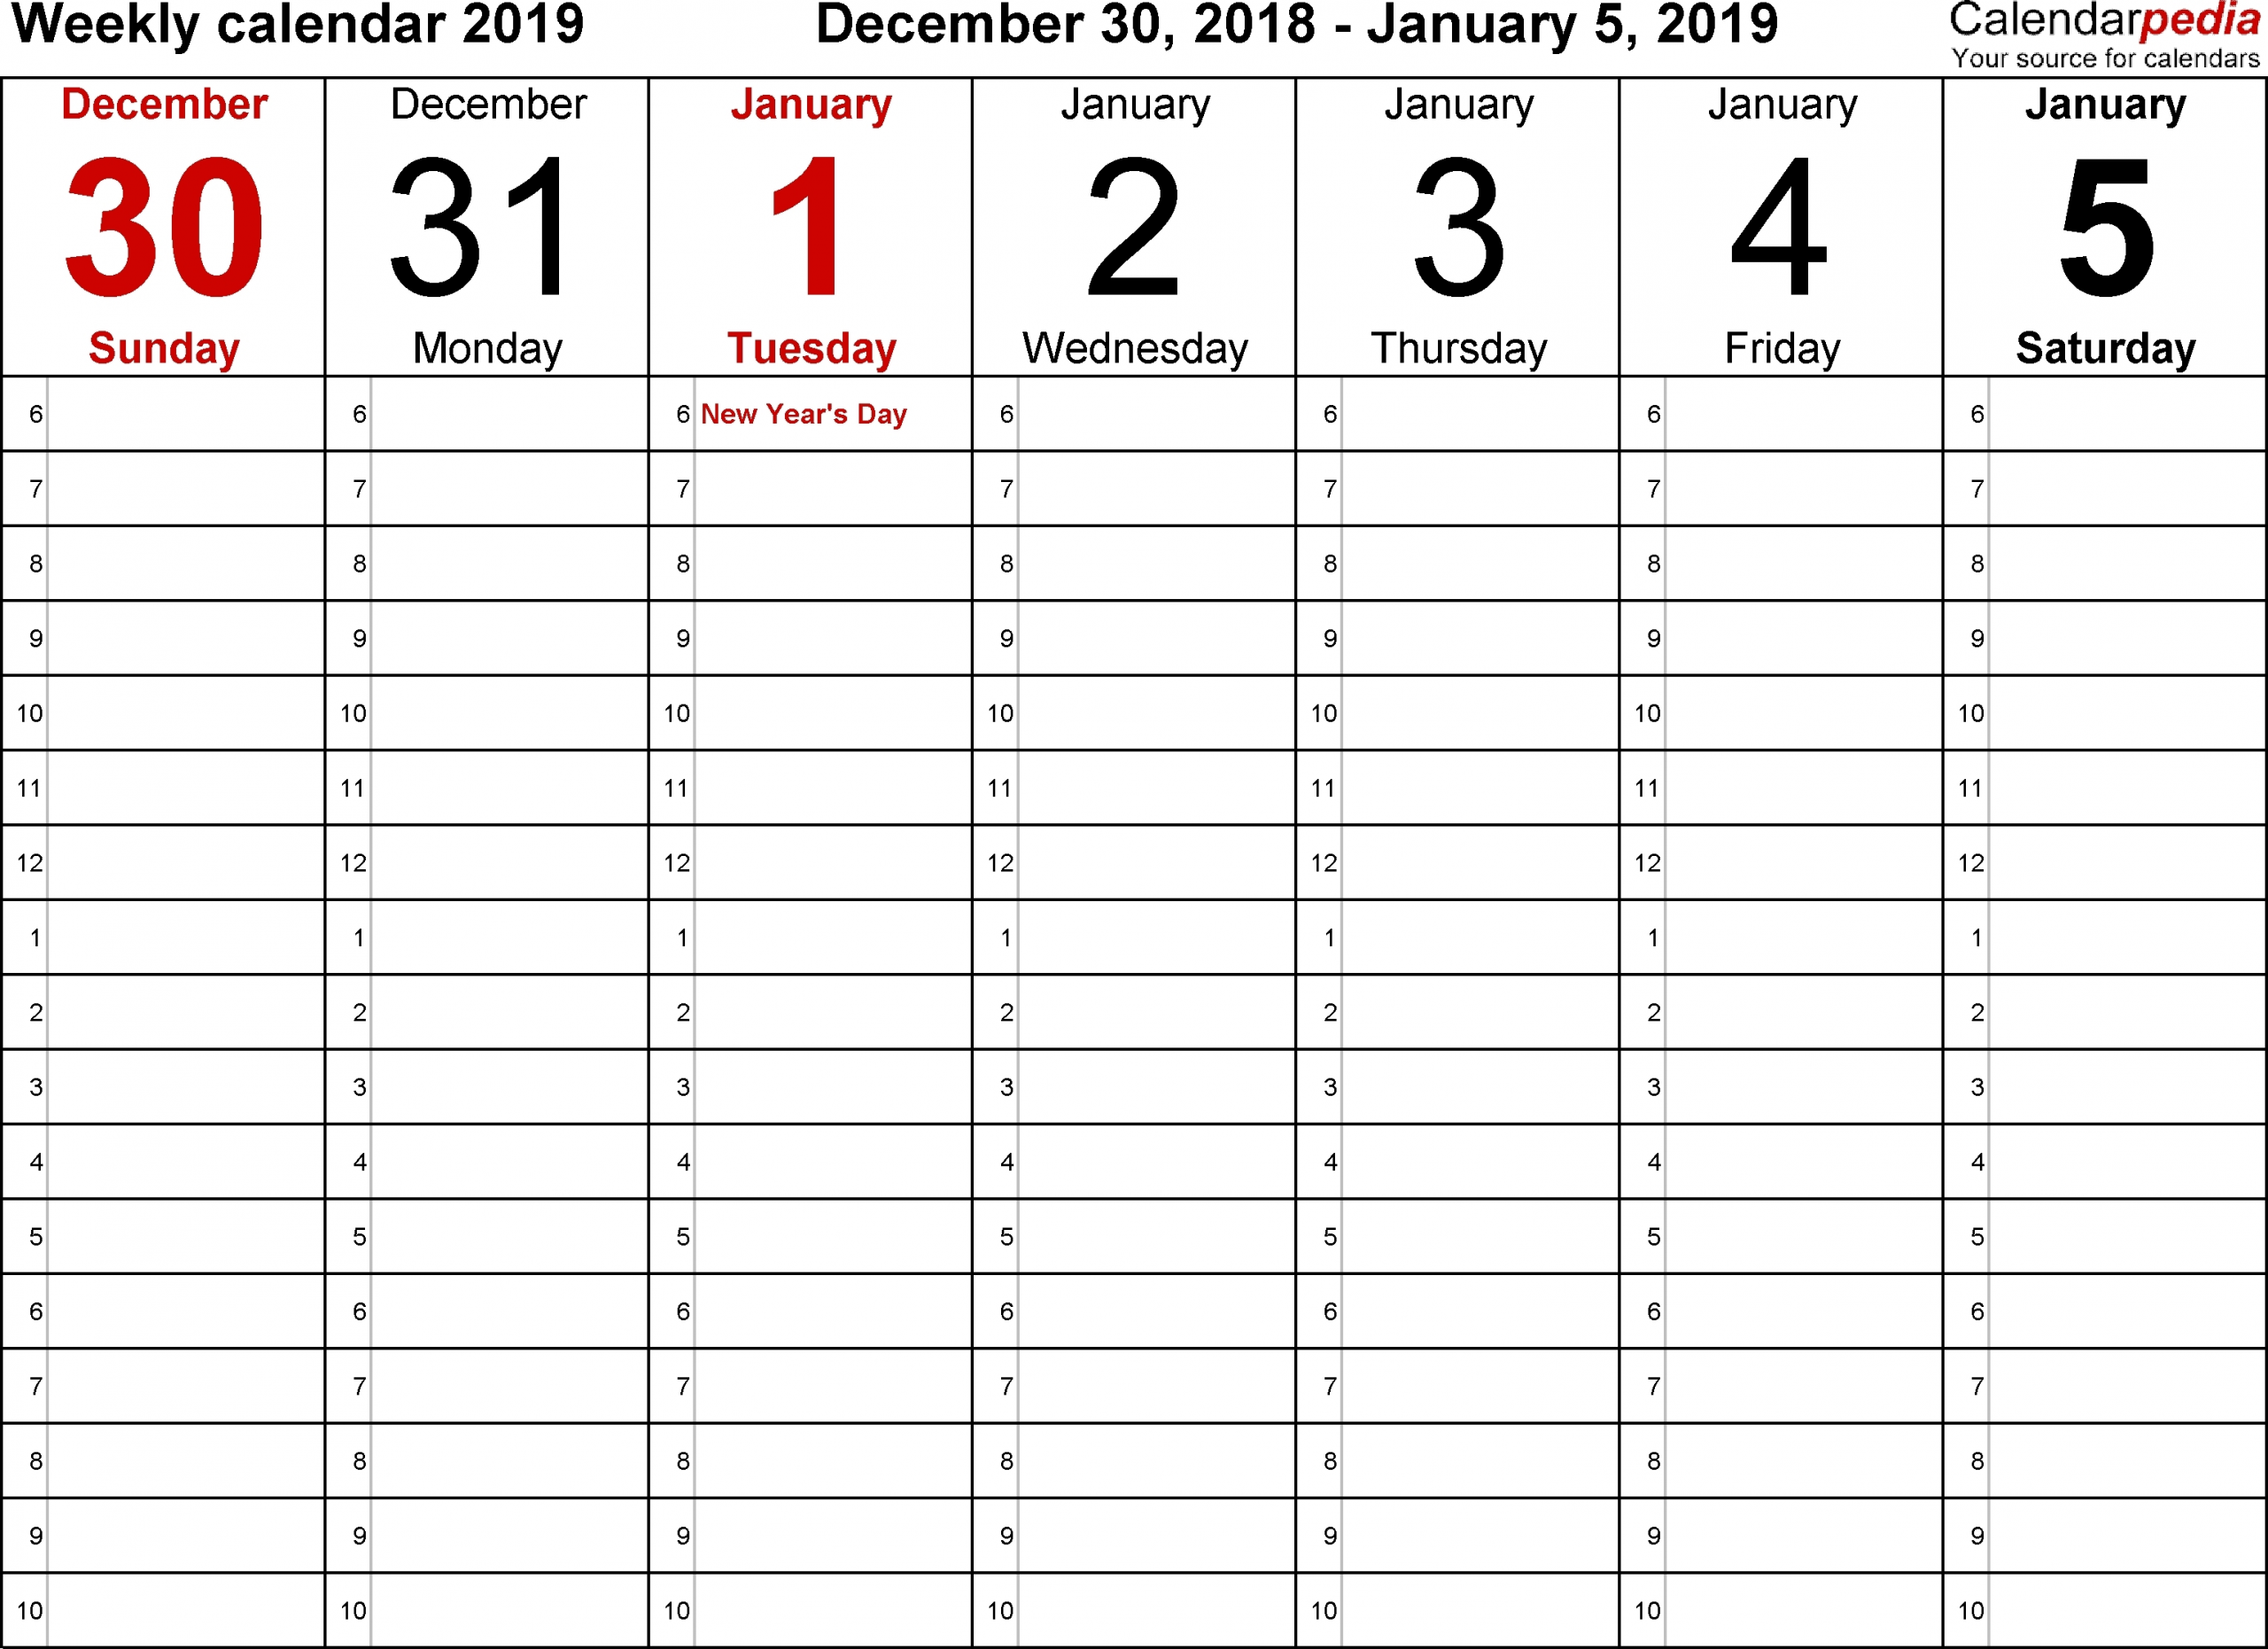 Blank Calendars To Print With Time Slots - Calendar Inspiration Design